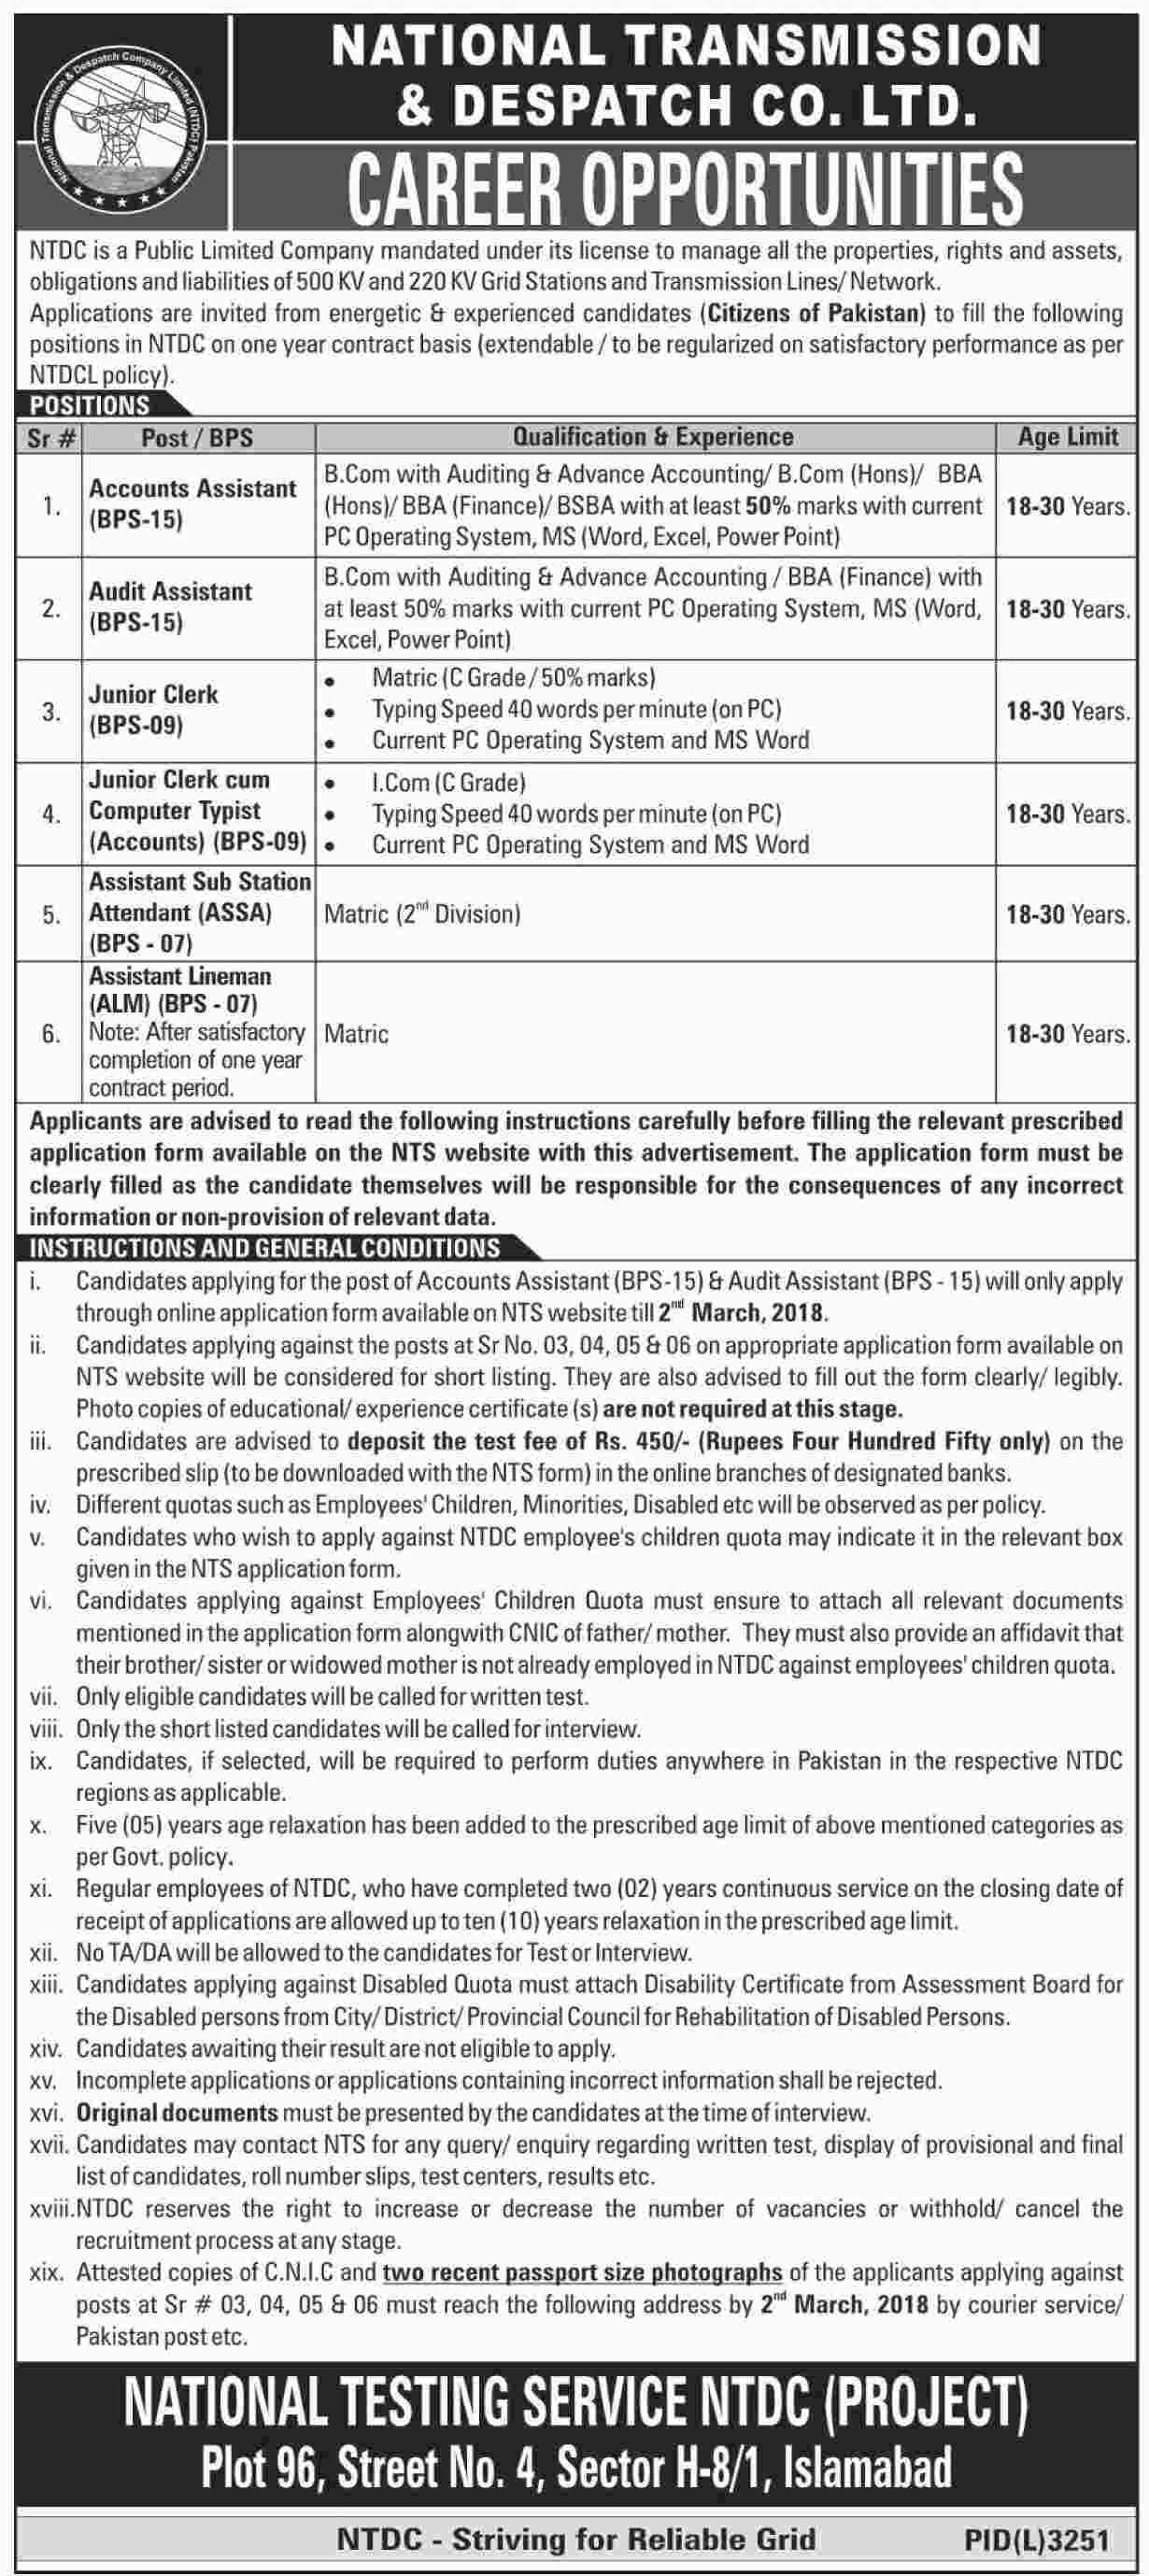 National Transmission and Dispatch Company Limited New Jobs 10 February 2018 Daily Jang Newspaper